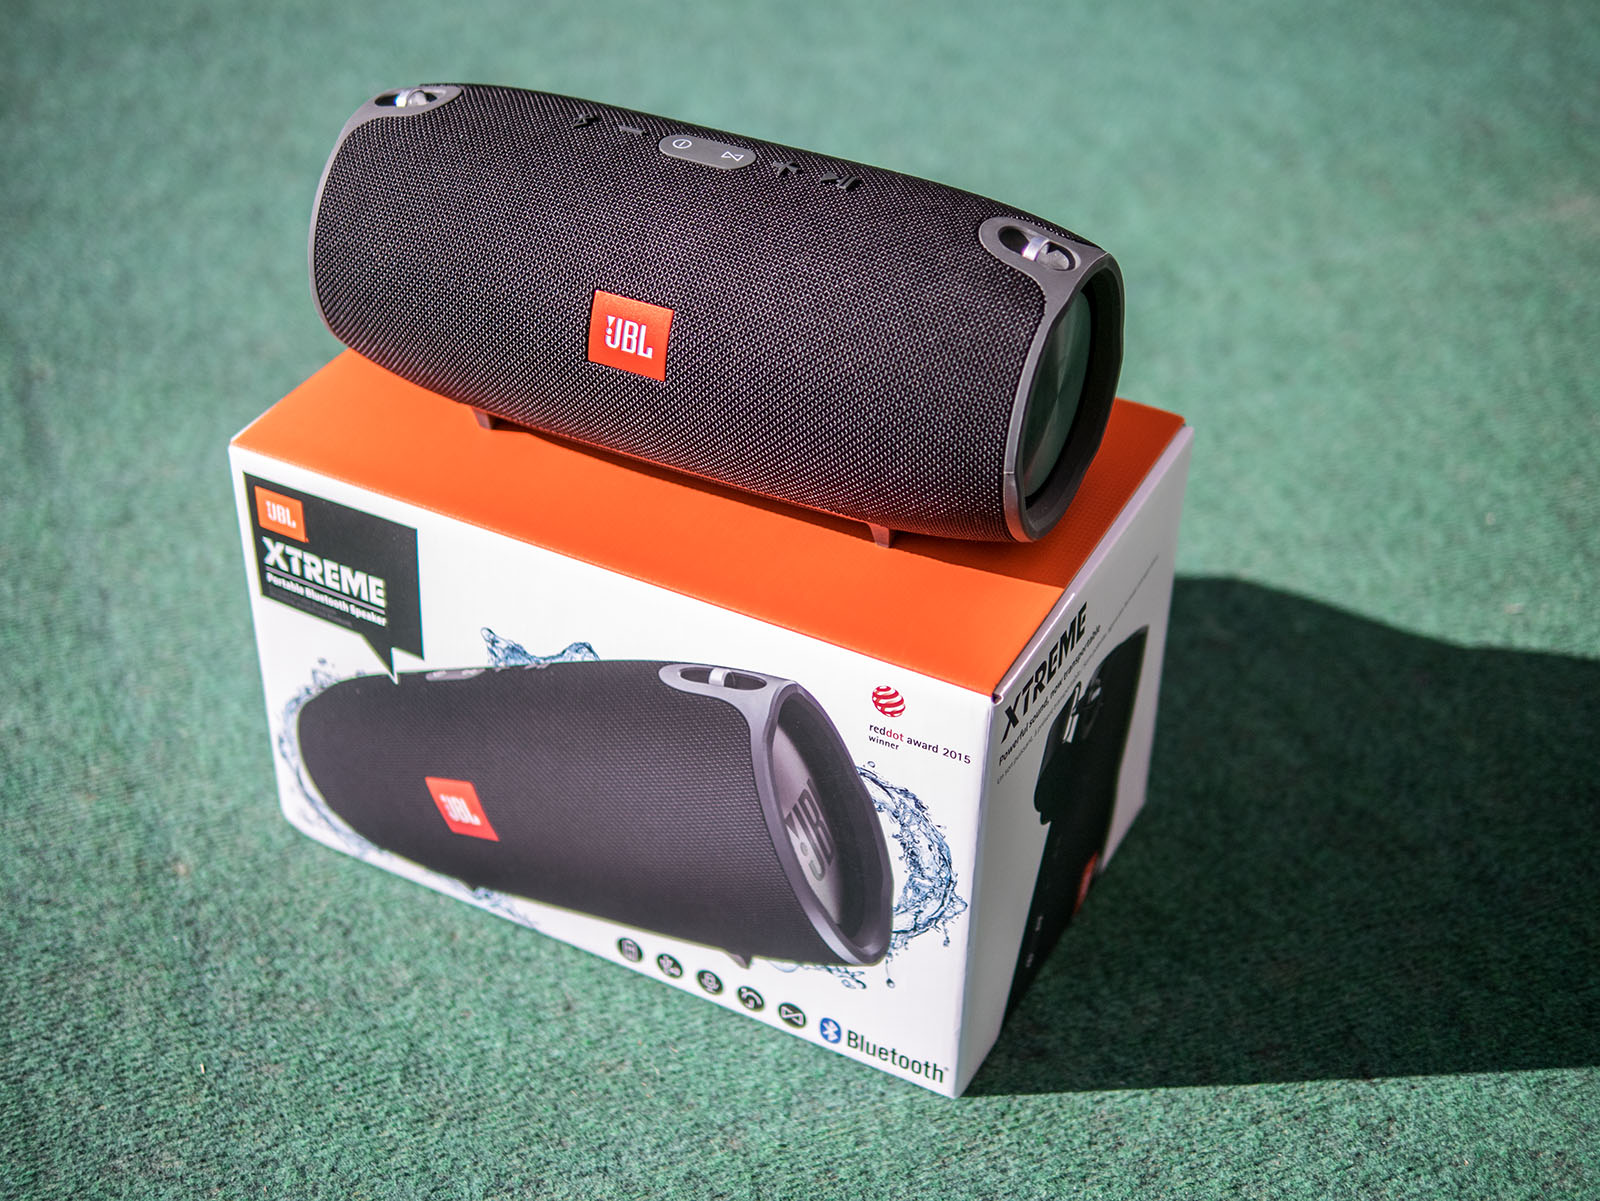 I actually like the strap and wel e that it is included now it makes the handling of the speaker more fortable because it is not that easy to grab it